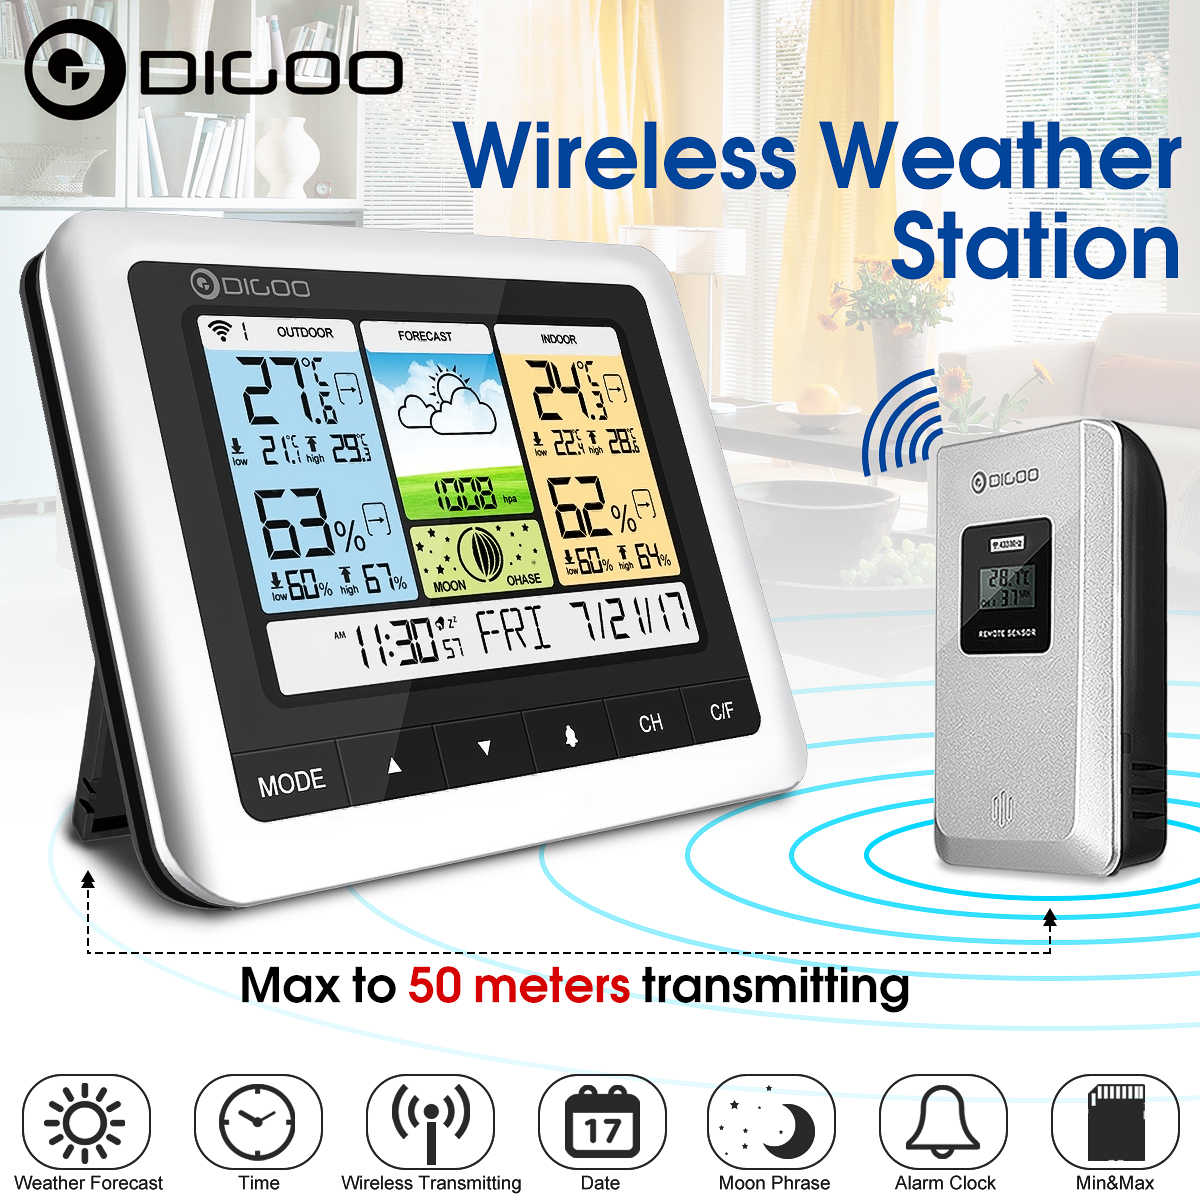 Digoo DG-TH8888 Outdoor Weather Station Jam + Cuaca Sensor USB Nirkabel Digital Thermometer Kelembaban Meter 3CH Frase Bulan